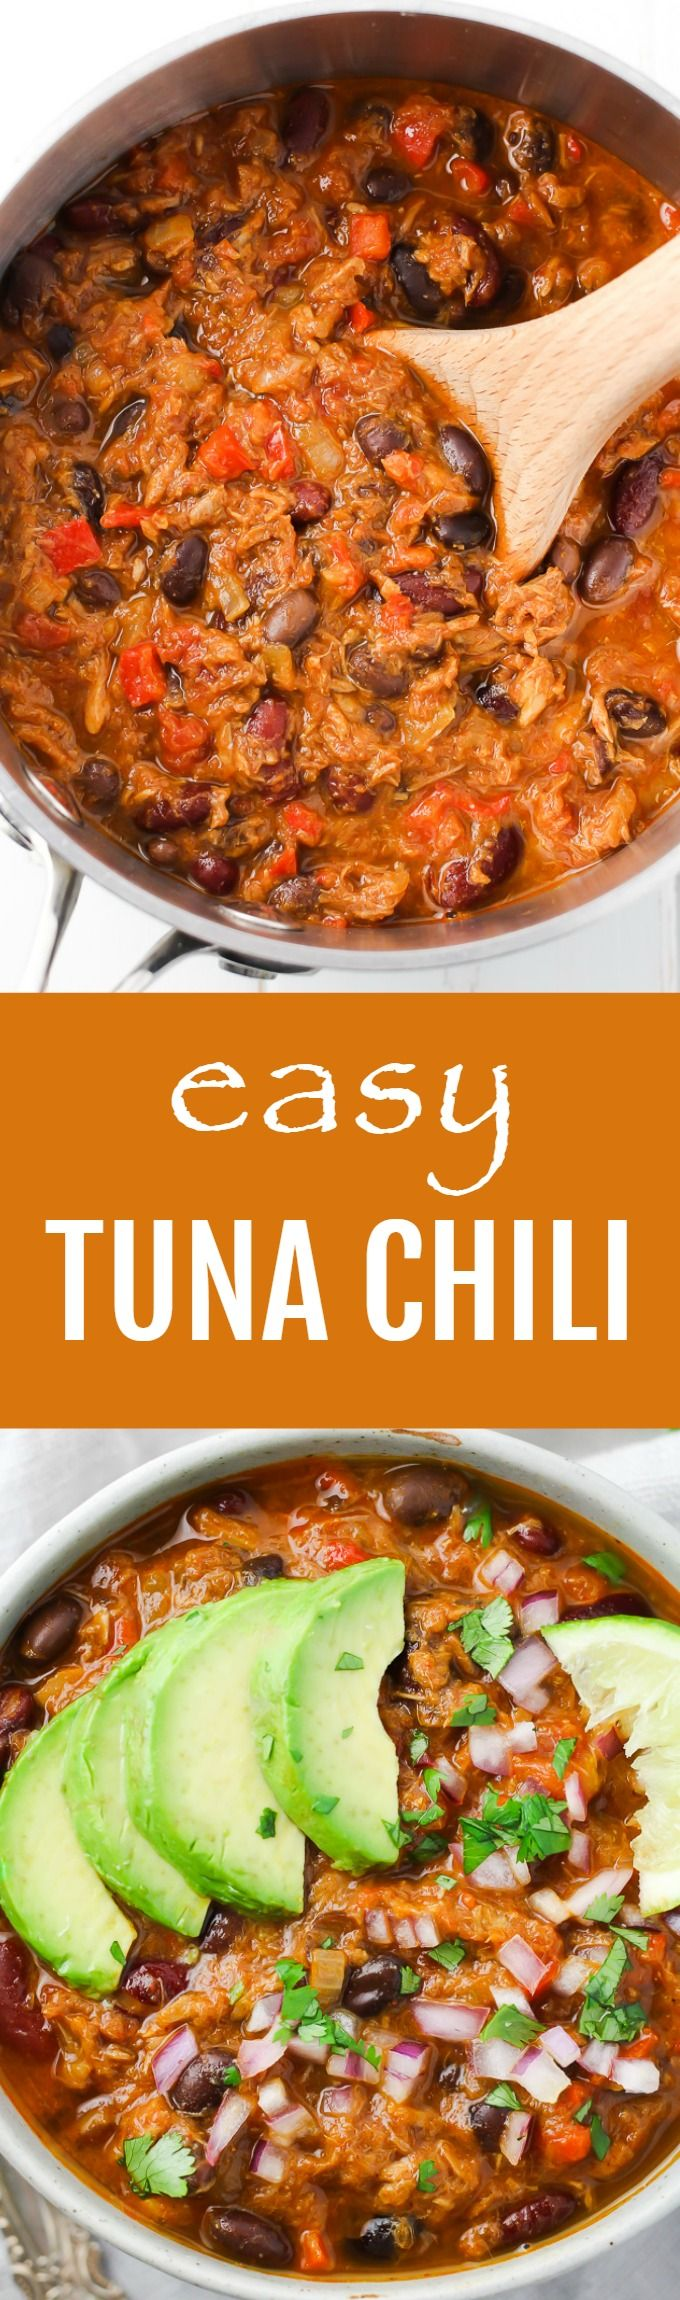 This tuna chili recipe is very easy to make using the ingredients most people have in their pantry. High in protein and very filling.